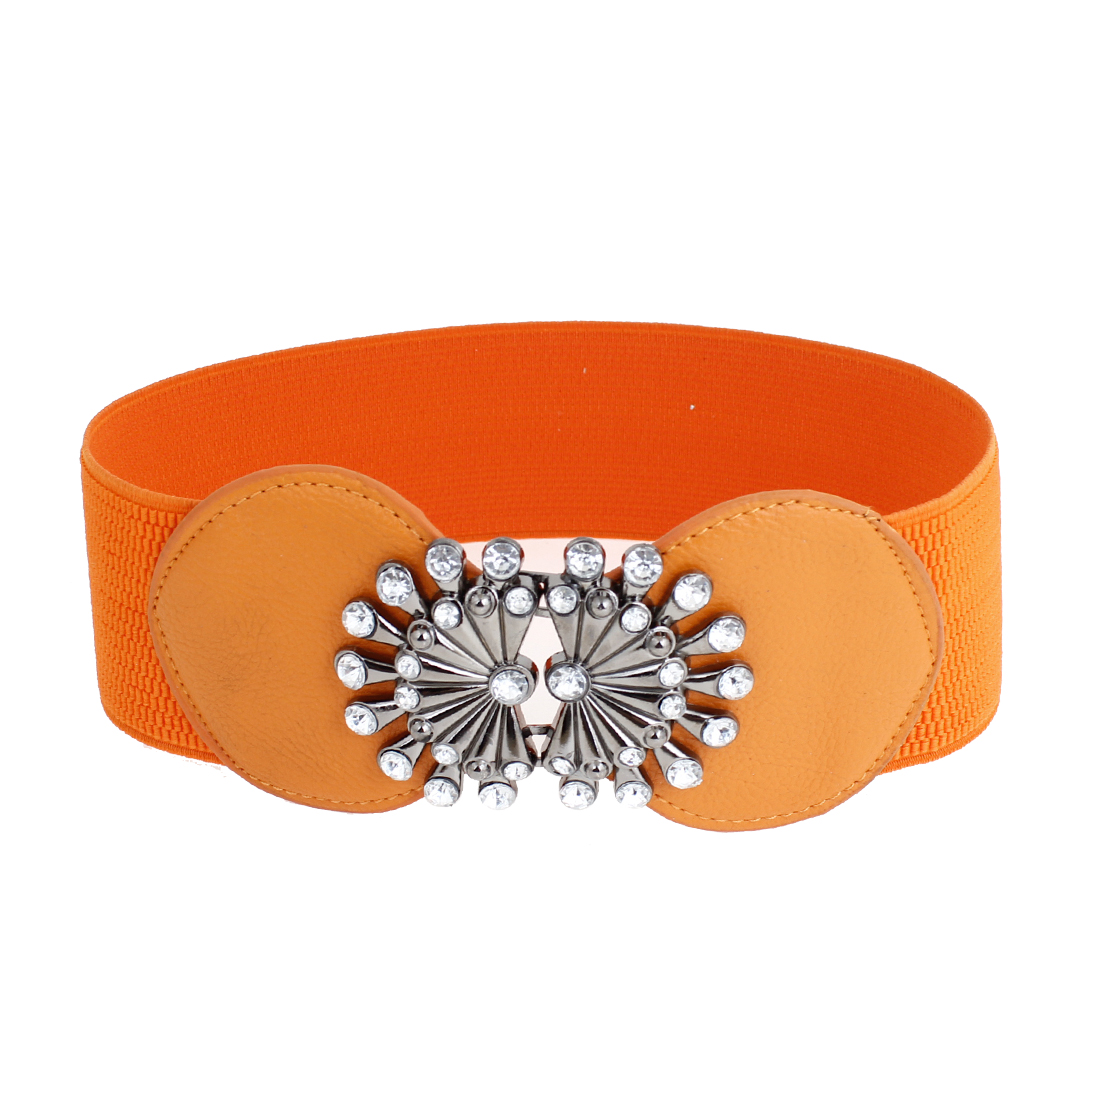 Lady Rhinestone Detail Interlocking Buckle Elastic Waistband Corset Band Orange